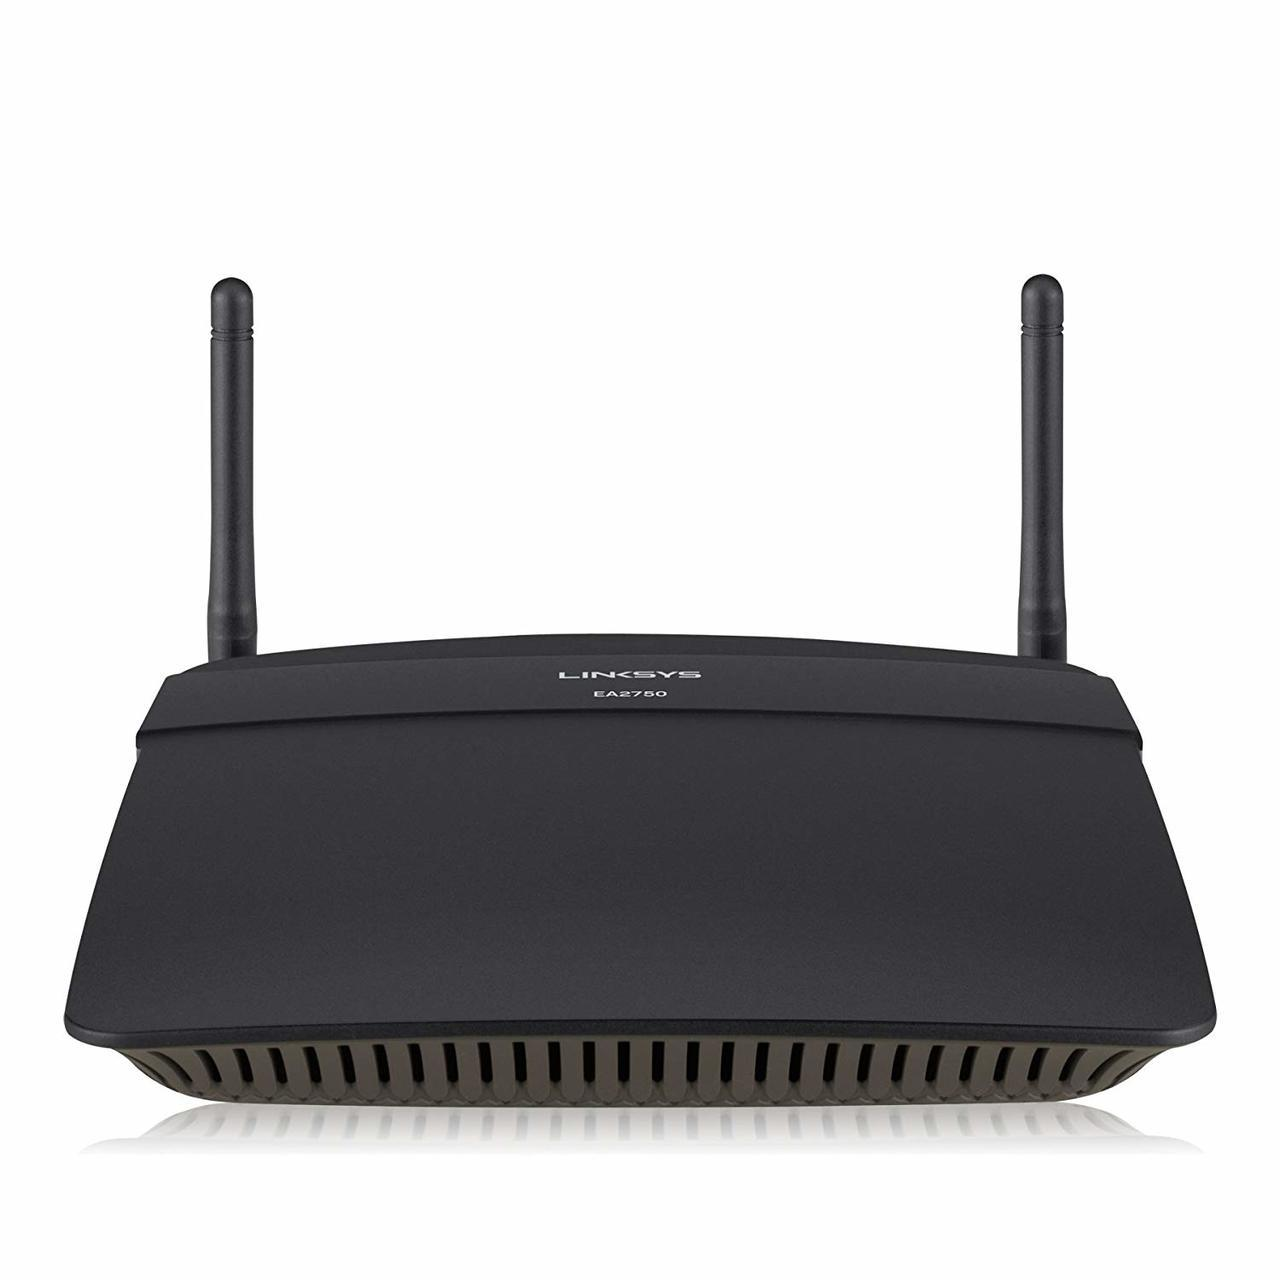 Linksys EA2750 N600 Wi-Fi Wireless Dual-Band+ Router with Gigabit Ports